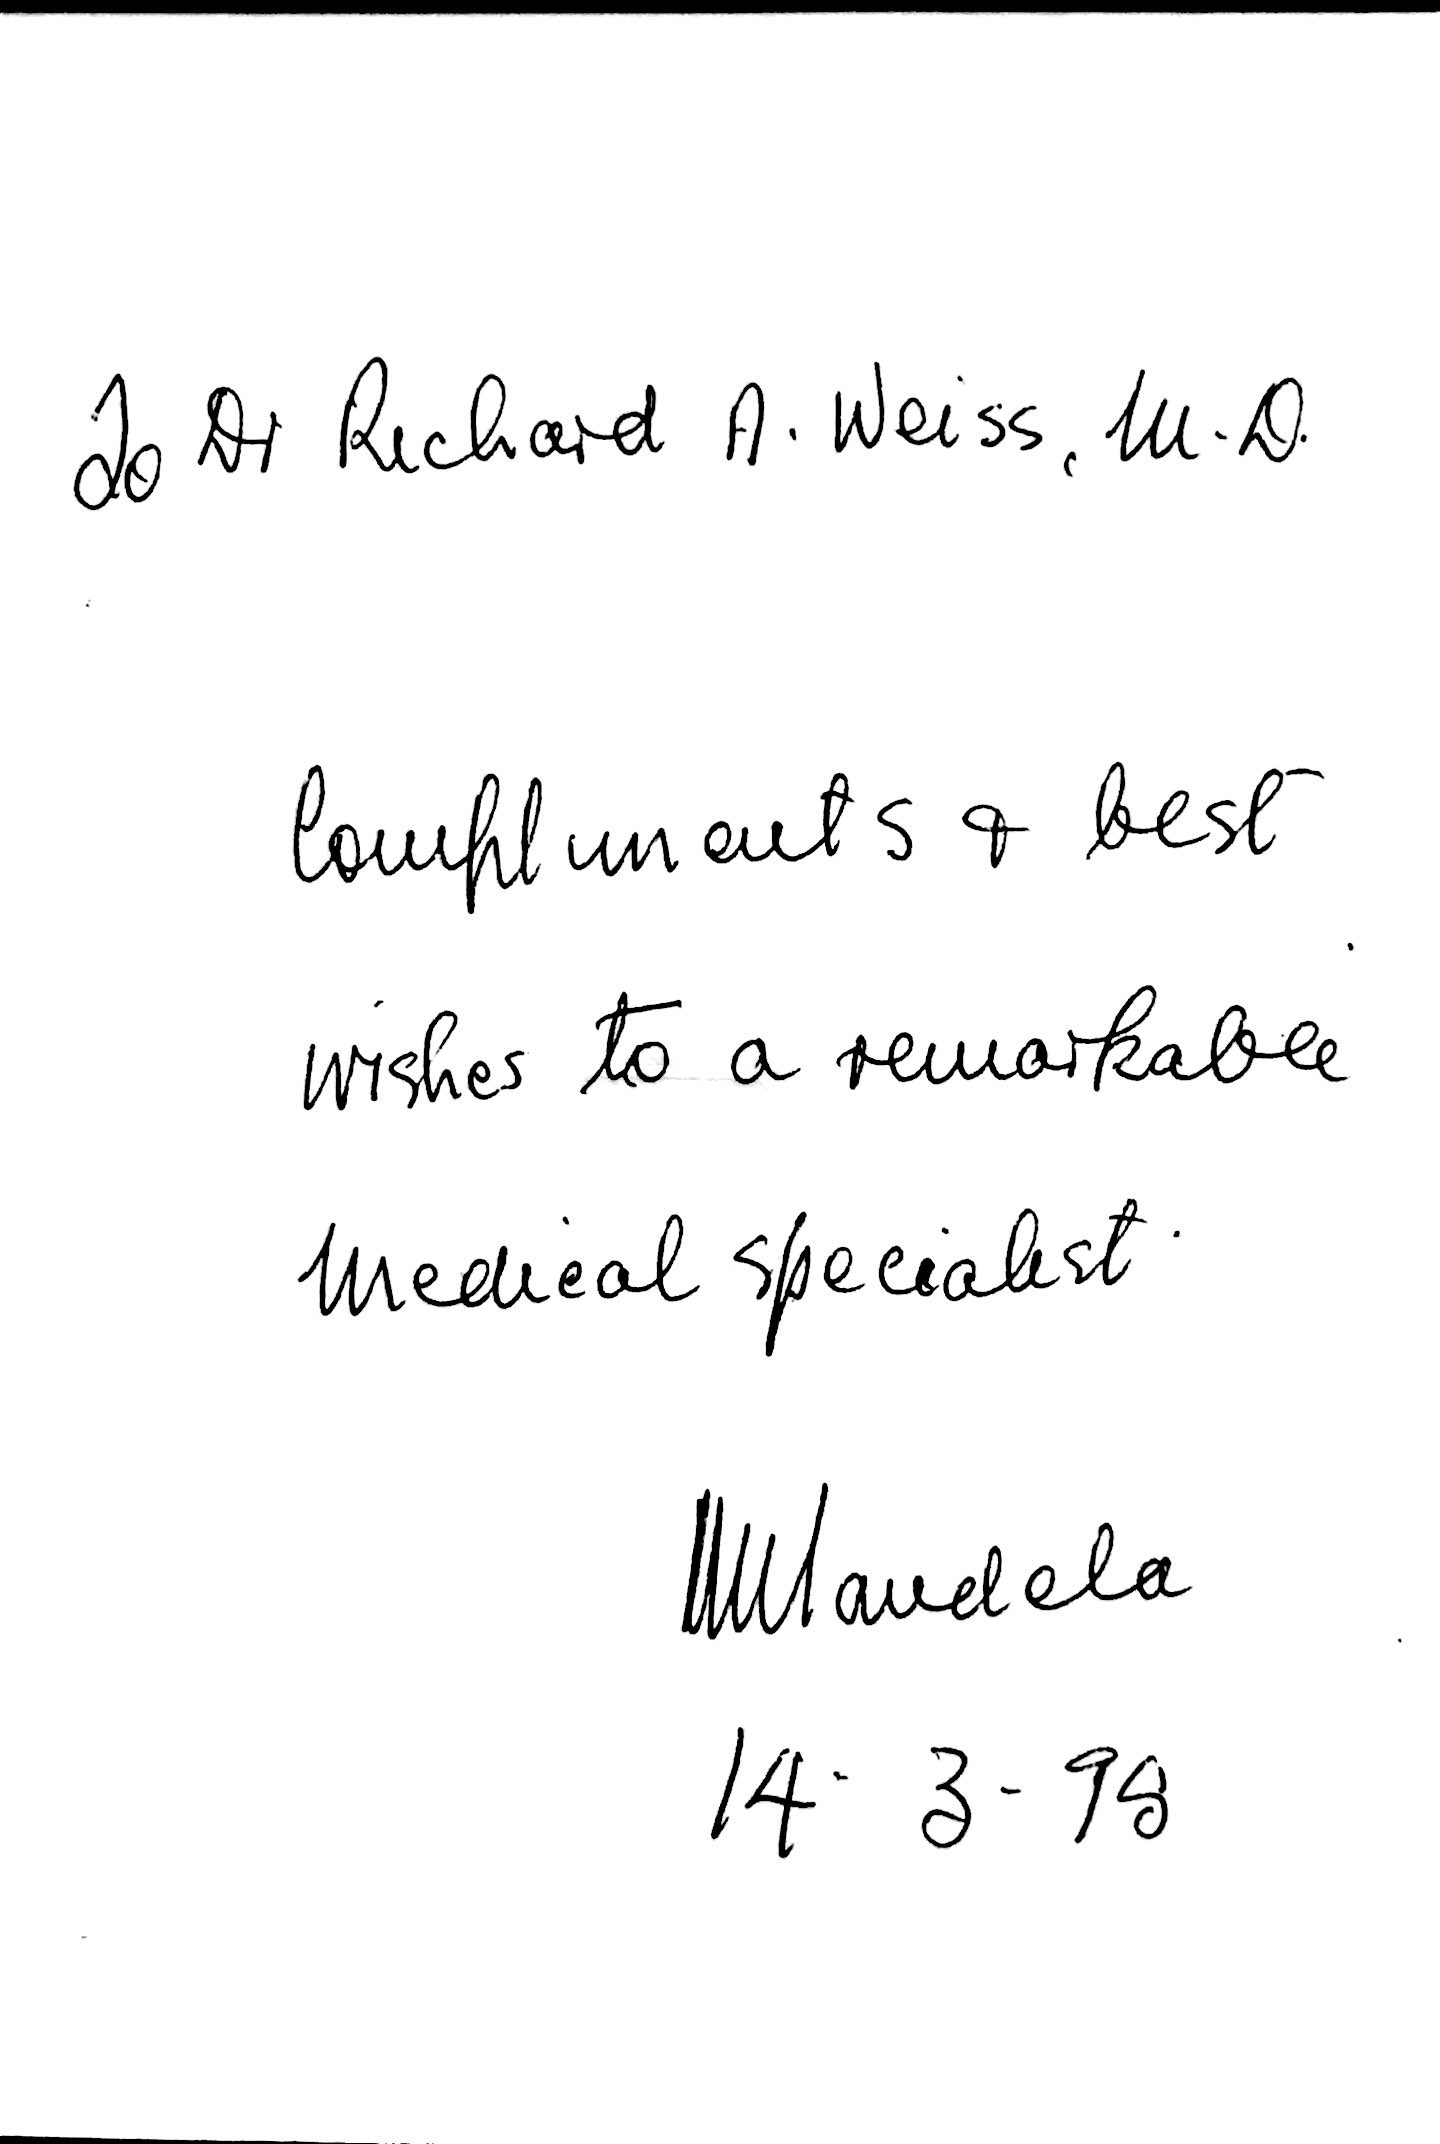 A written thank you letter from Nelson Mandela to Dr. Weiss